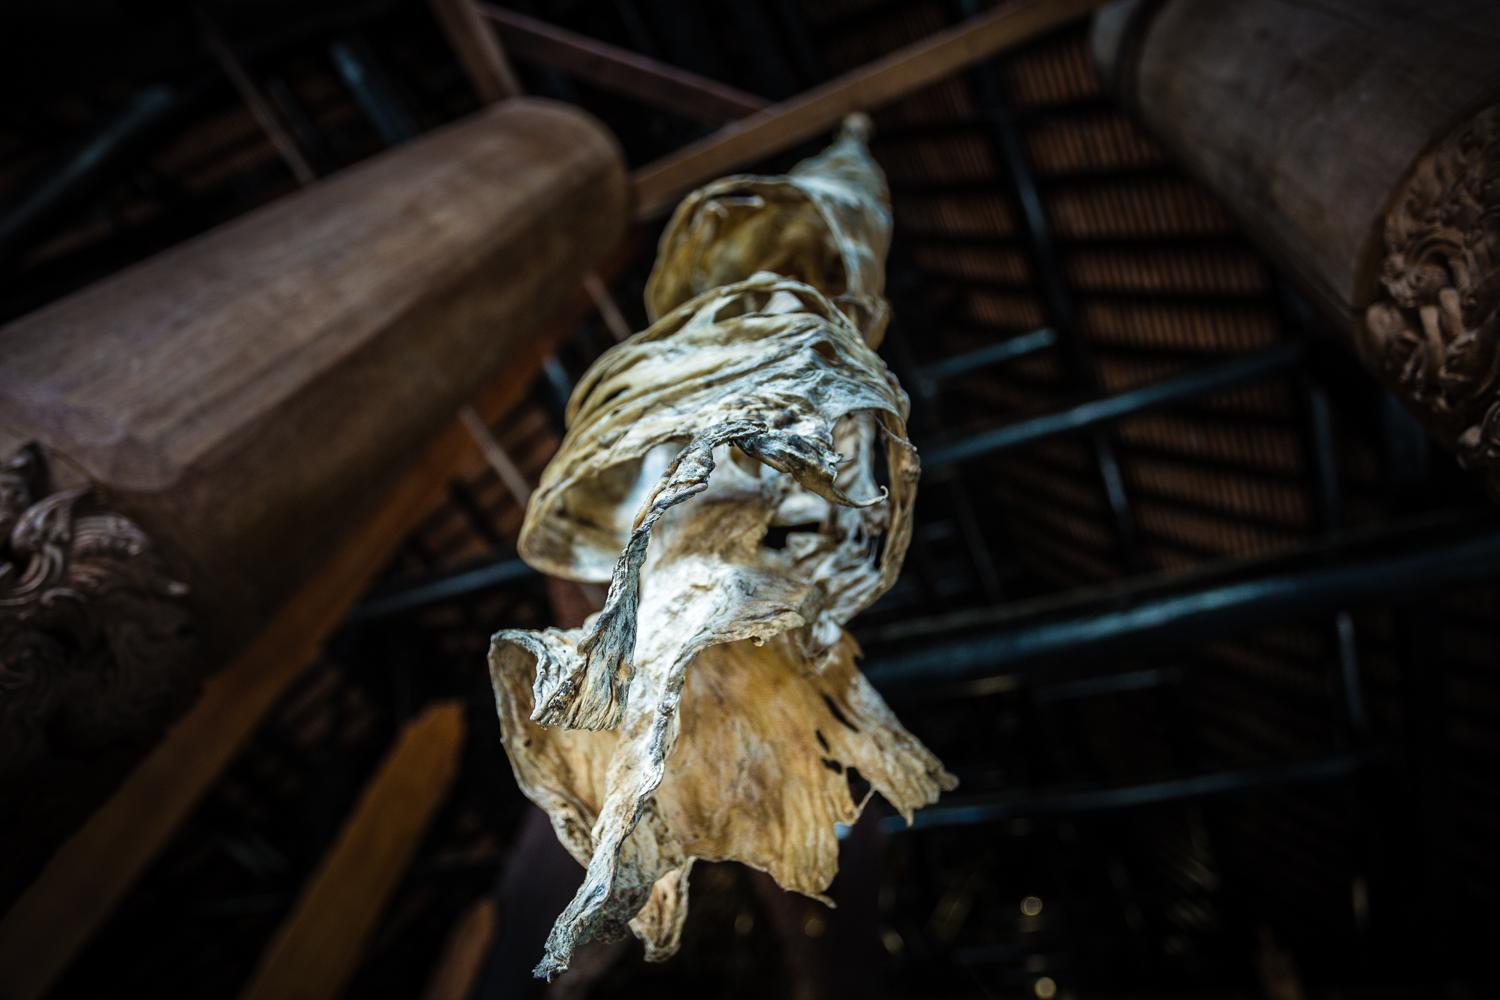 A twisted animal skin hanging from the ceiling.